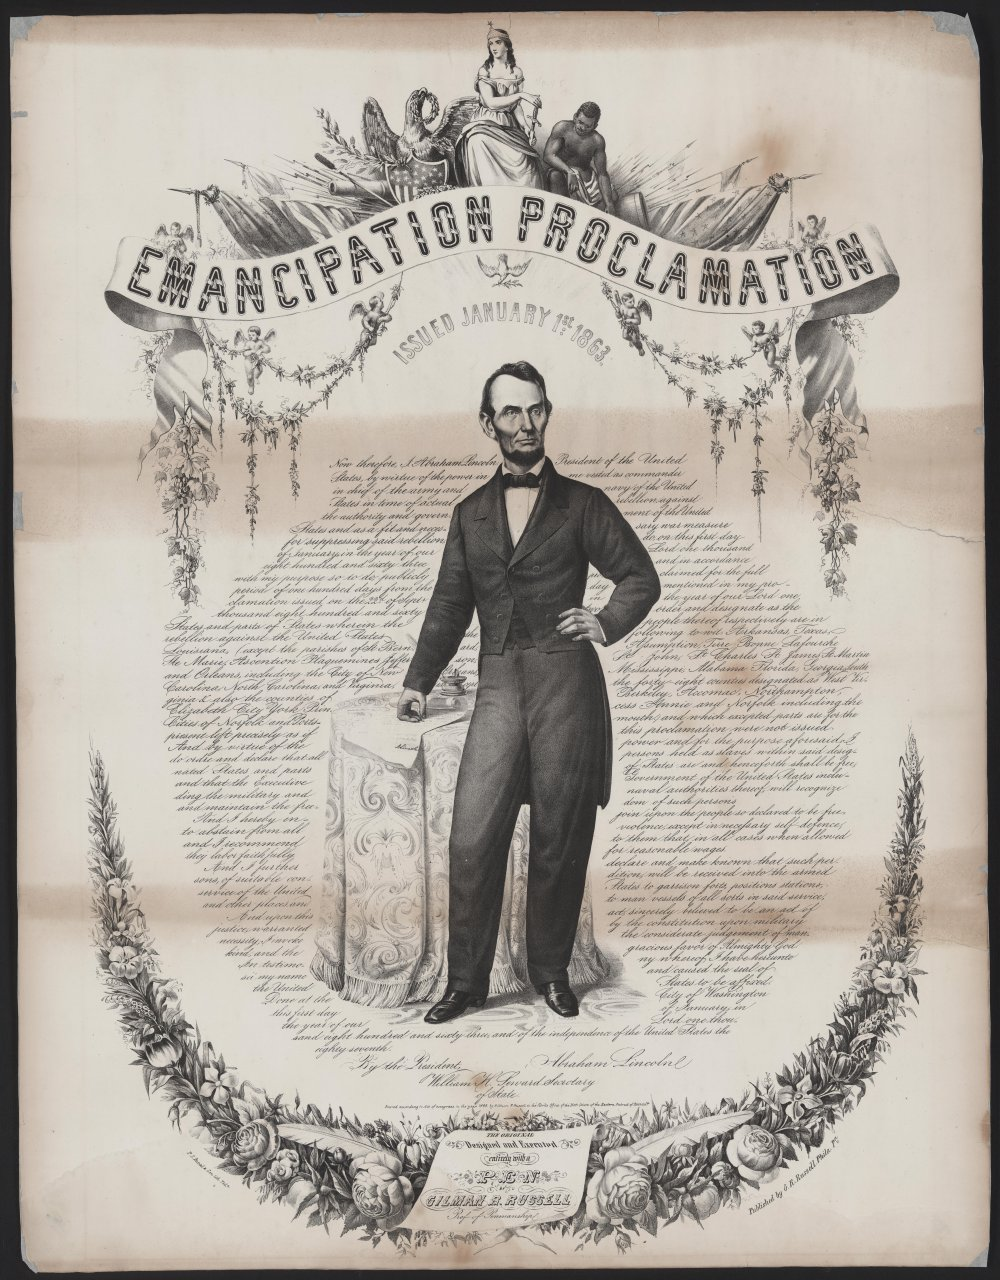 the emancipation proclamation as reported in the christian recorder the emancipation proclamation in the christian recorder